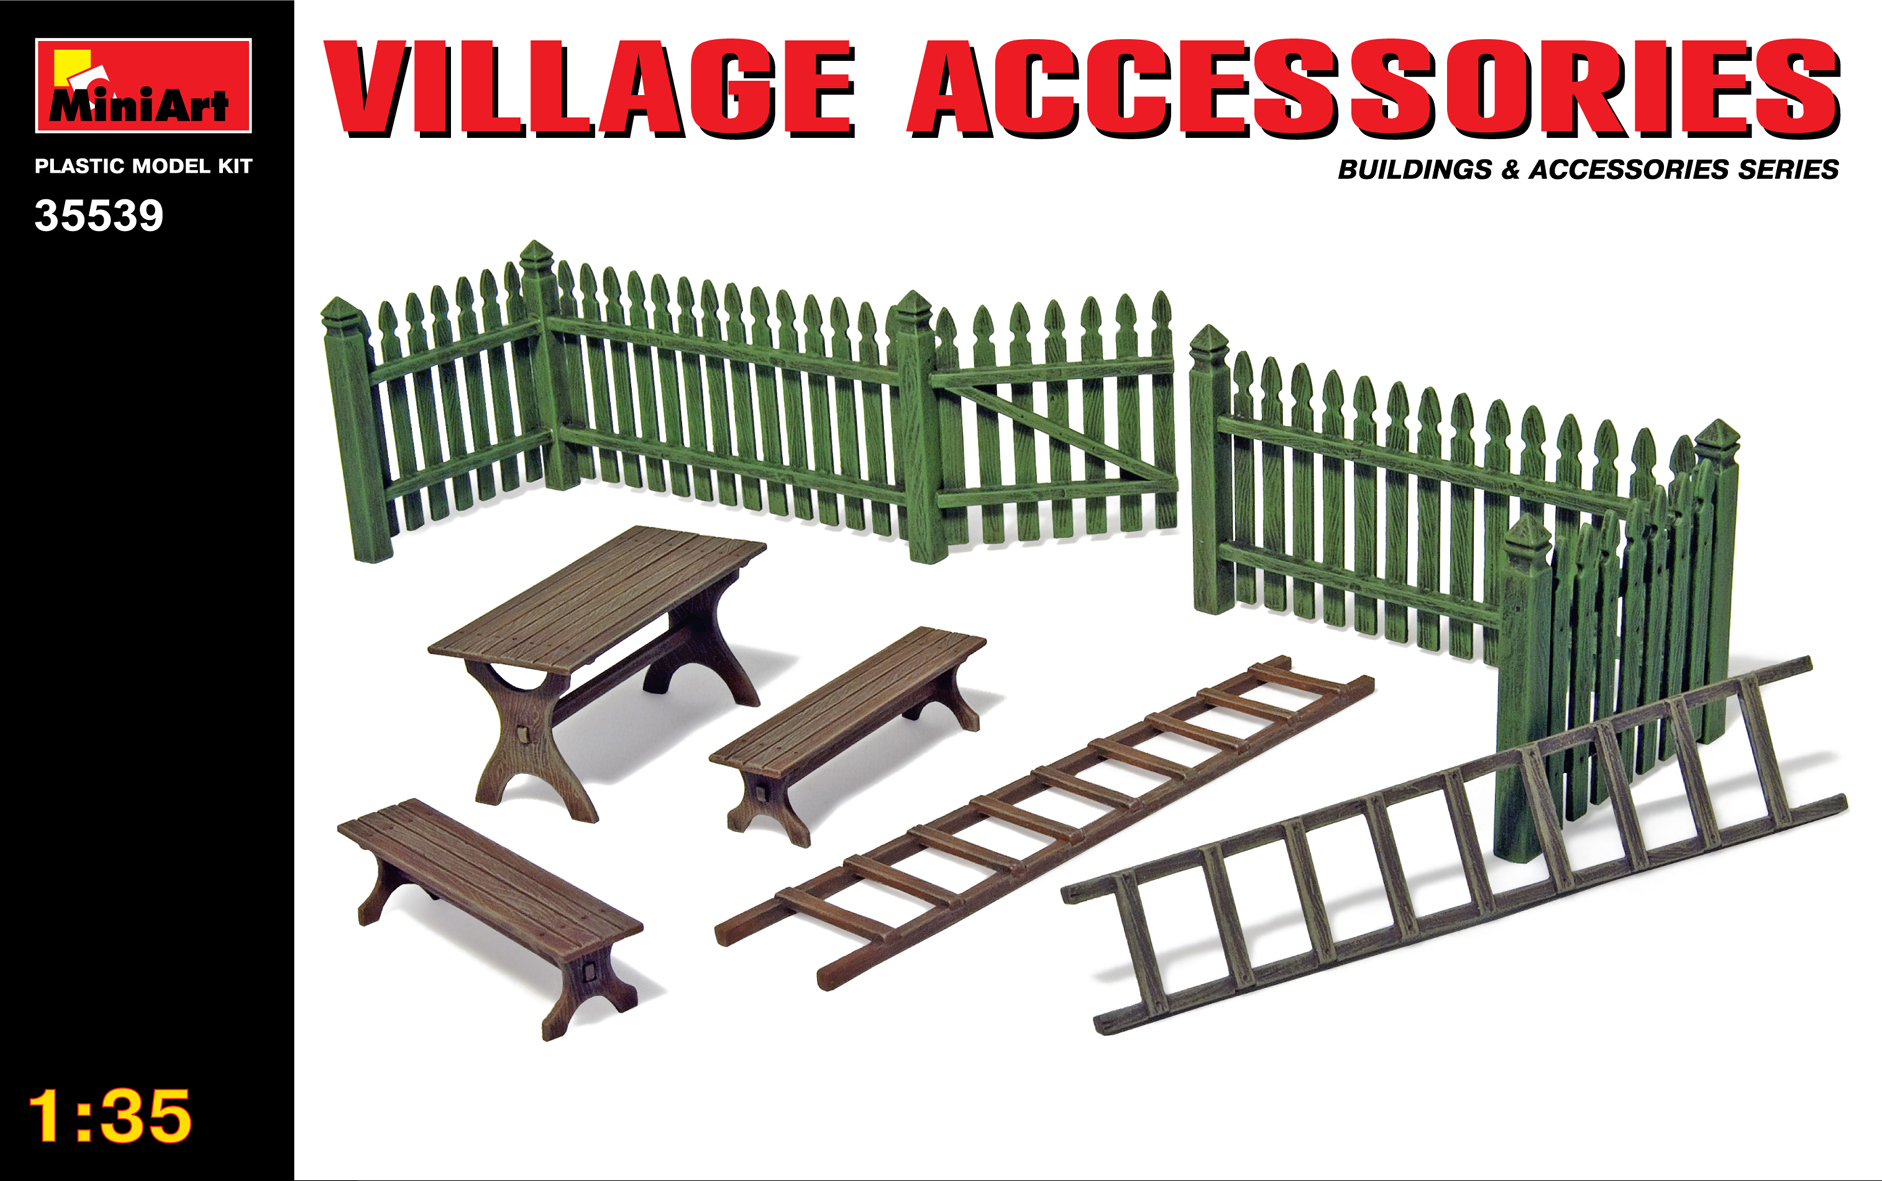 MiniArt Village Accessories (1/35)